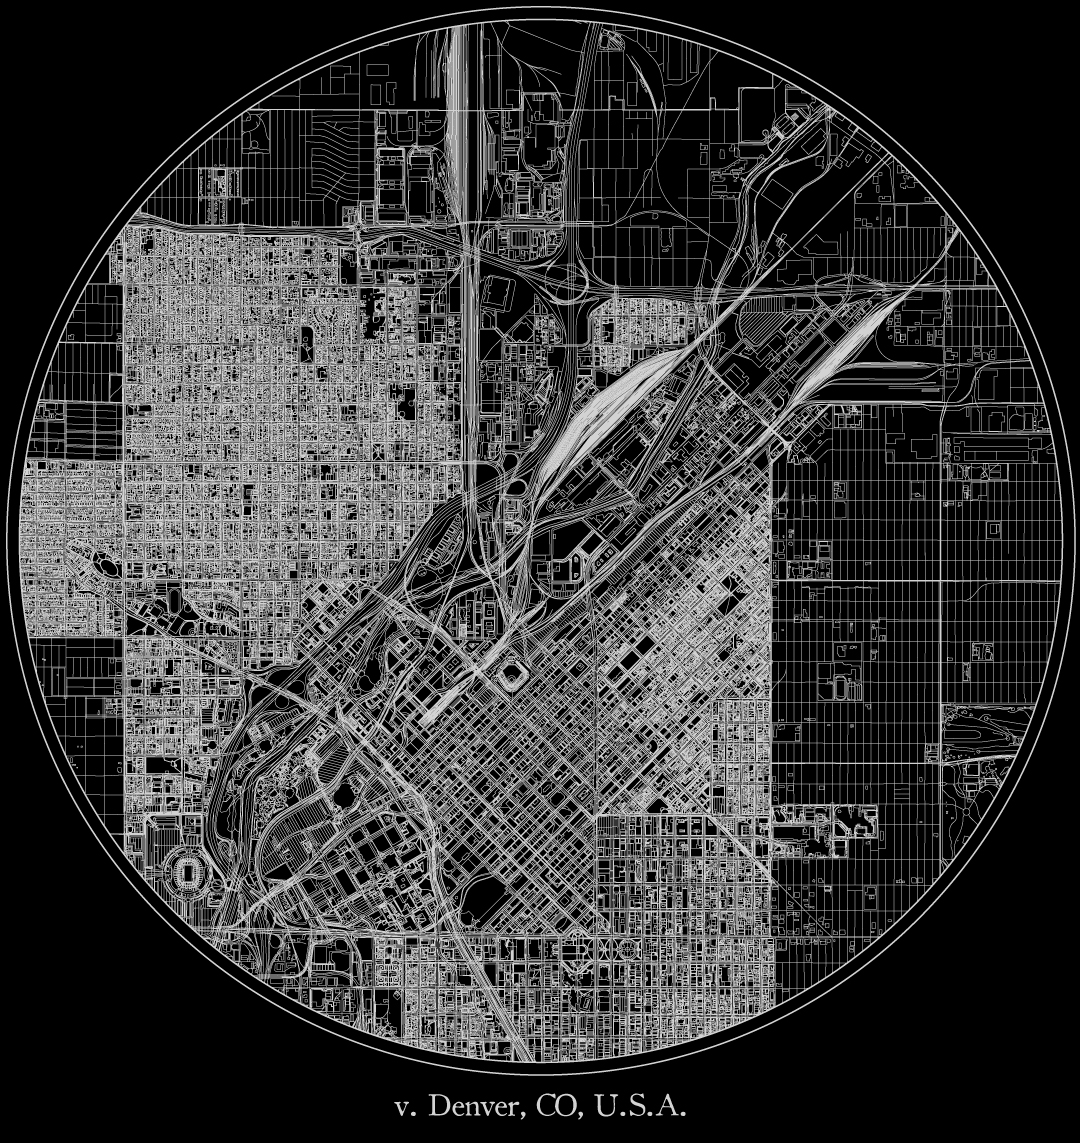 City map illustration of Denver created using Maperitive, OpenStreetMap and Adobe Illustrator.